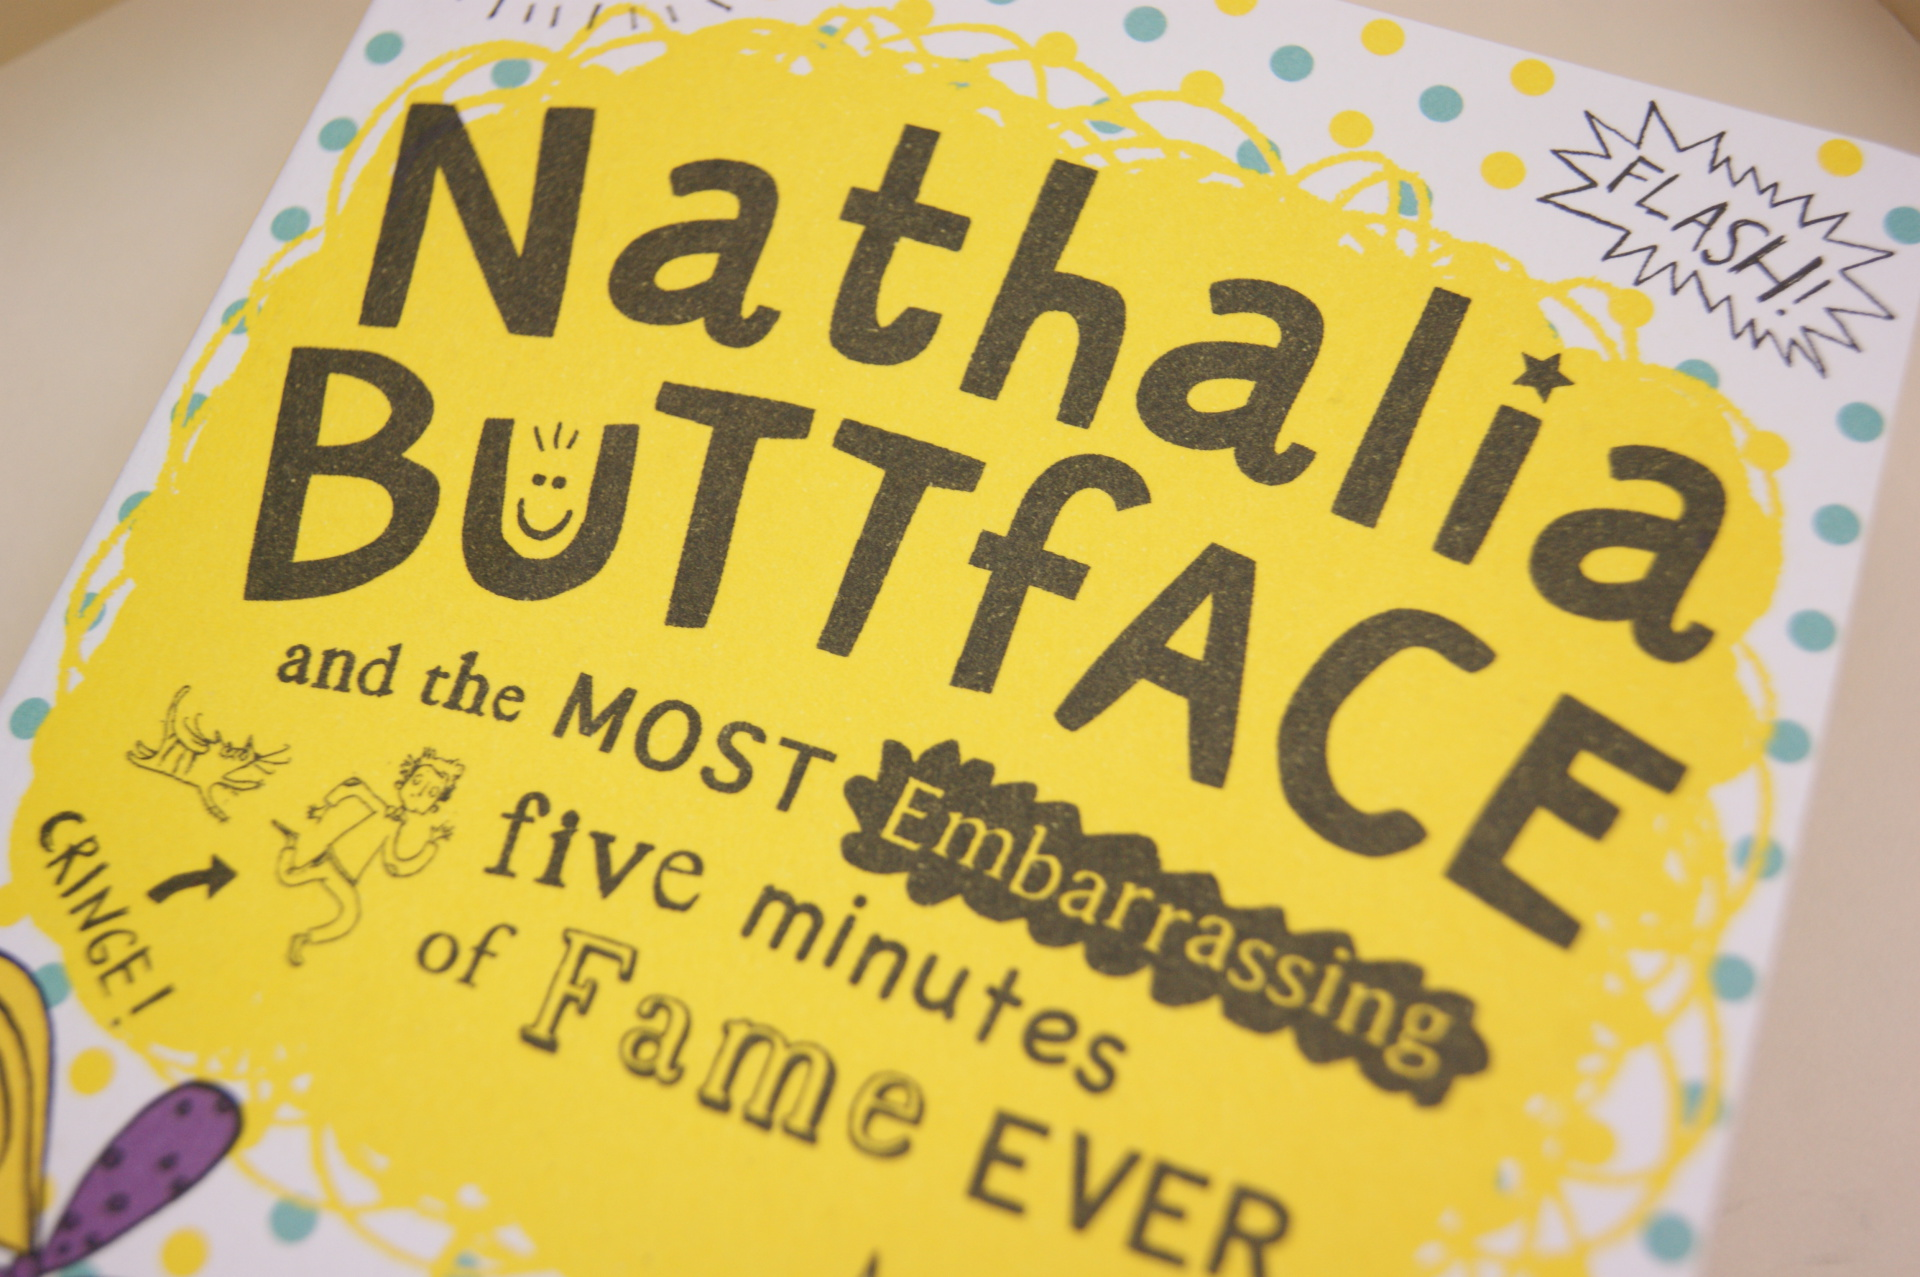 Nathalia Buttface by Nigel Smith - Book Review